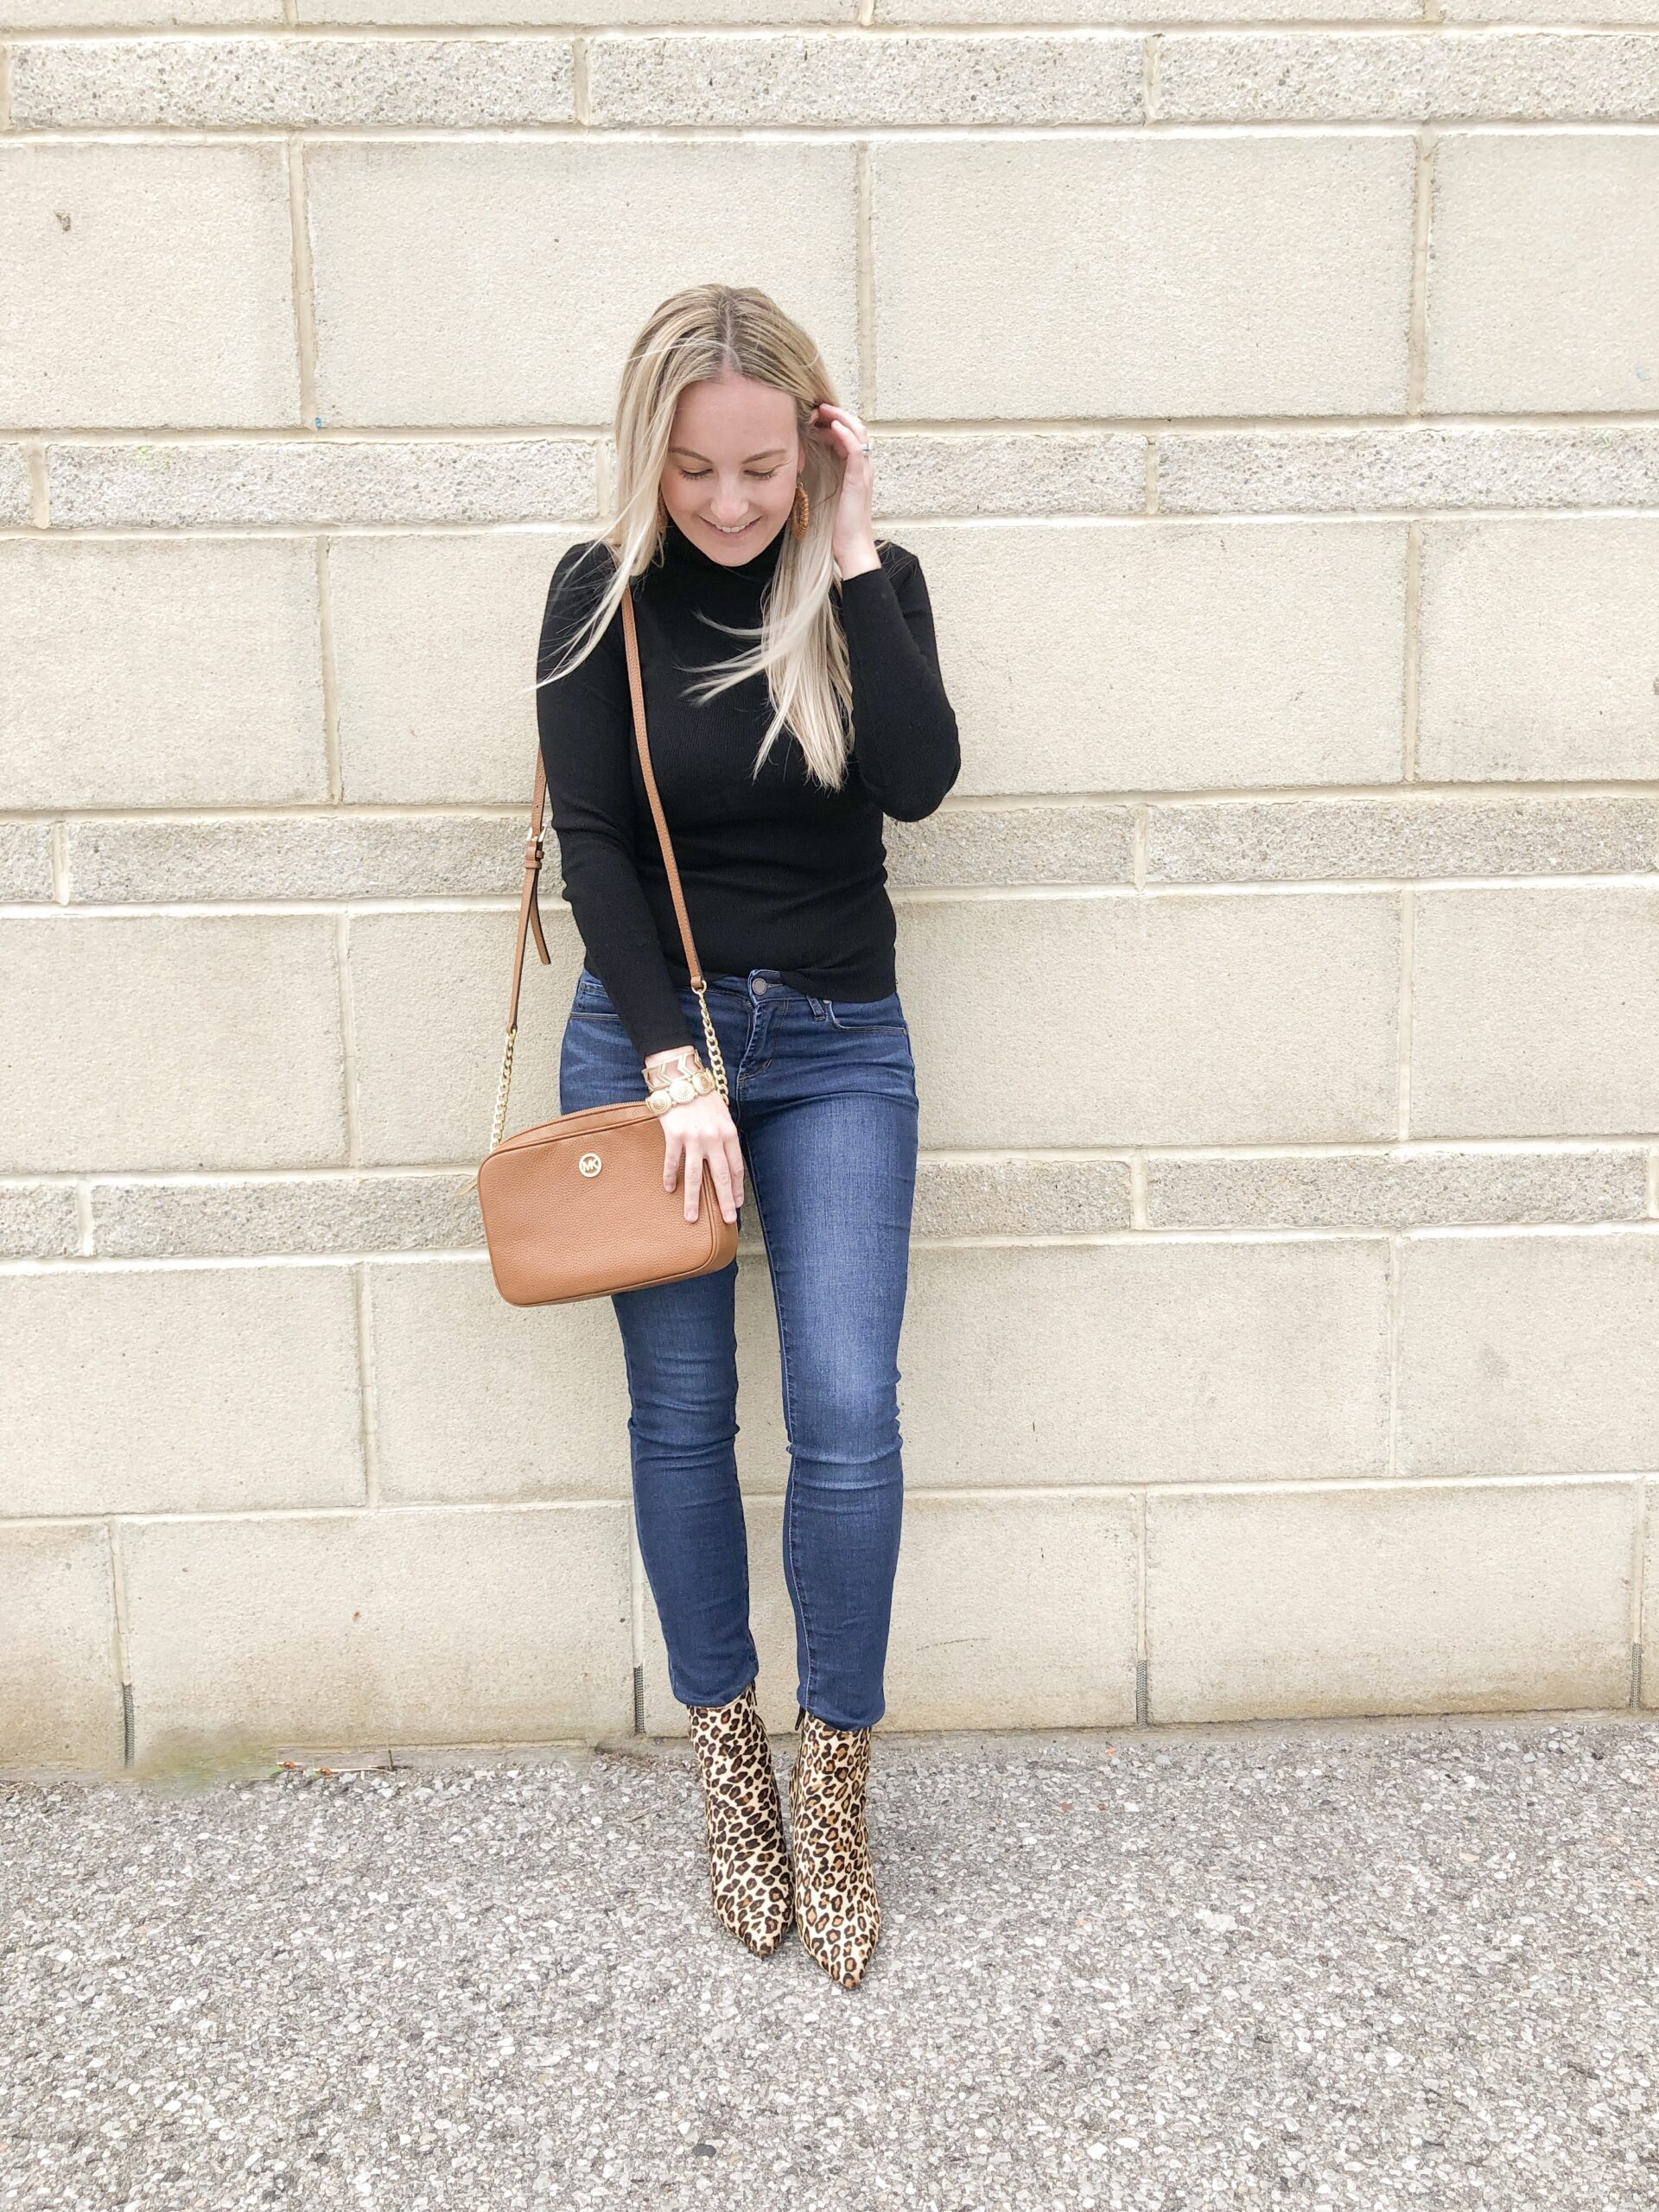 leopard print booties style post on livin' life with style